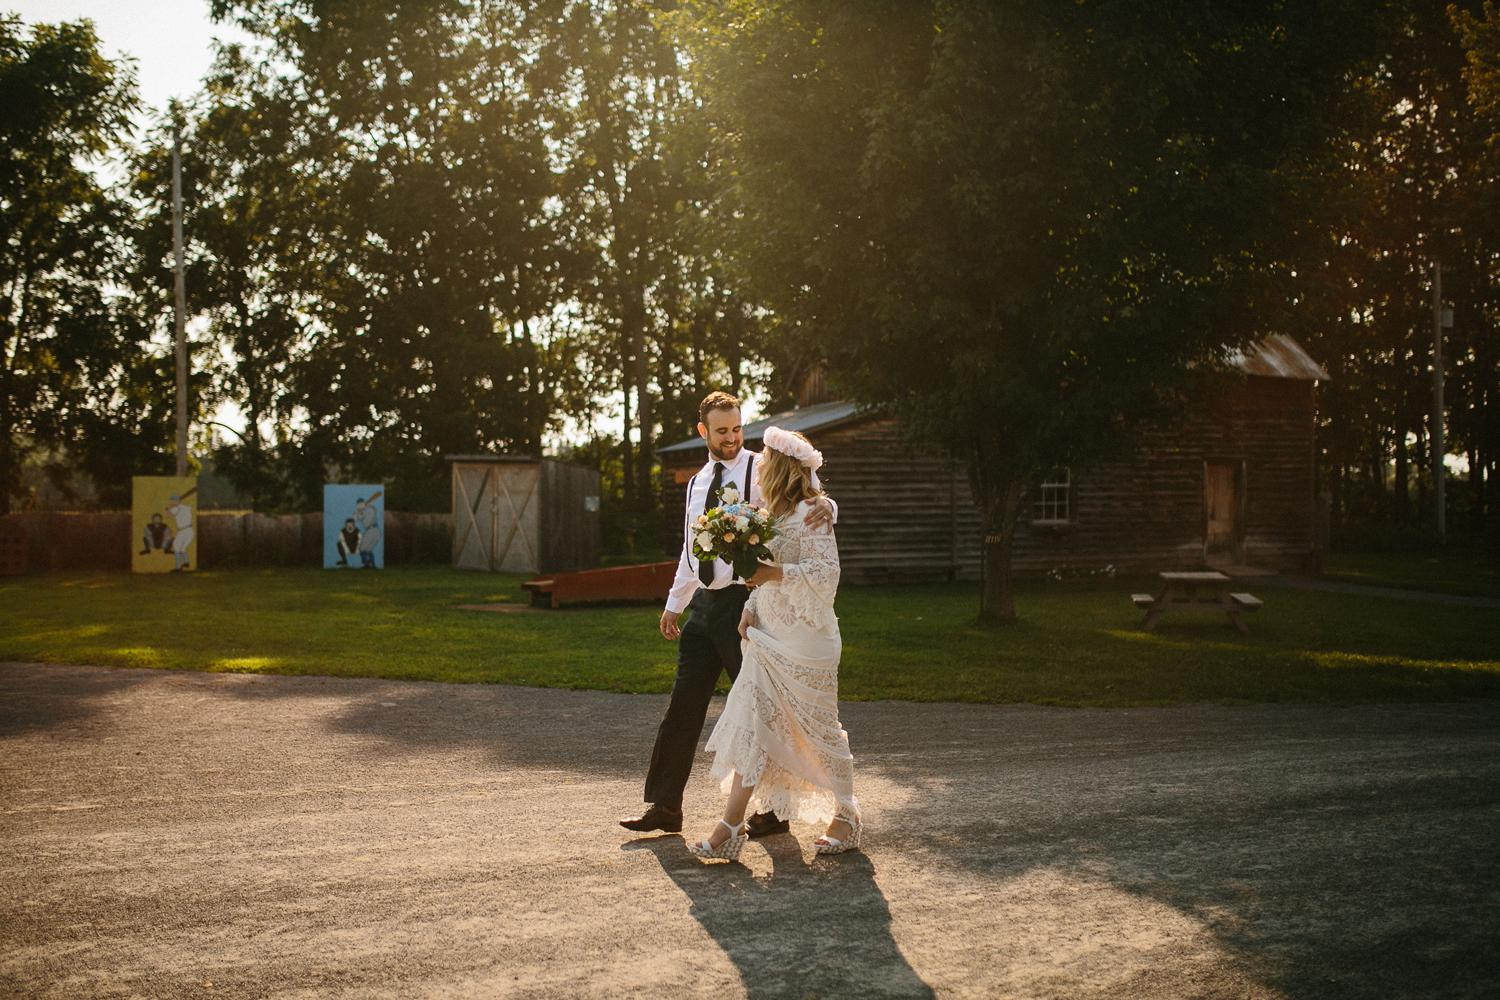 cumberland heritage museum wedding - kerry ford photography-114.jpg